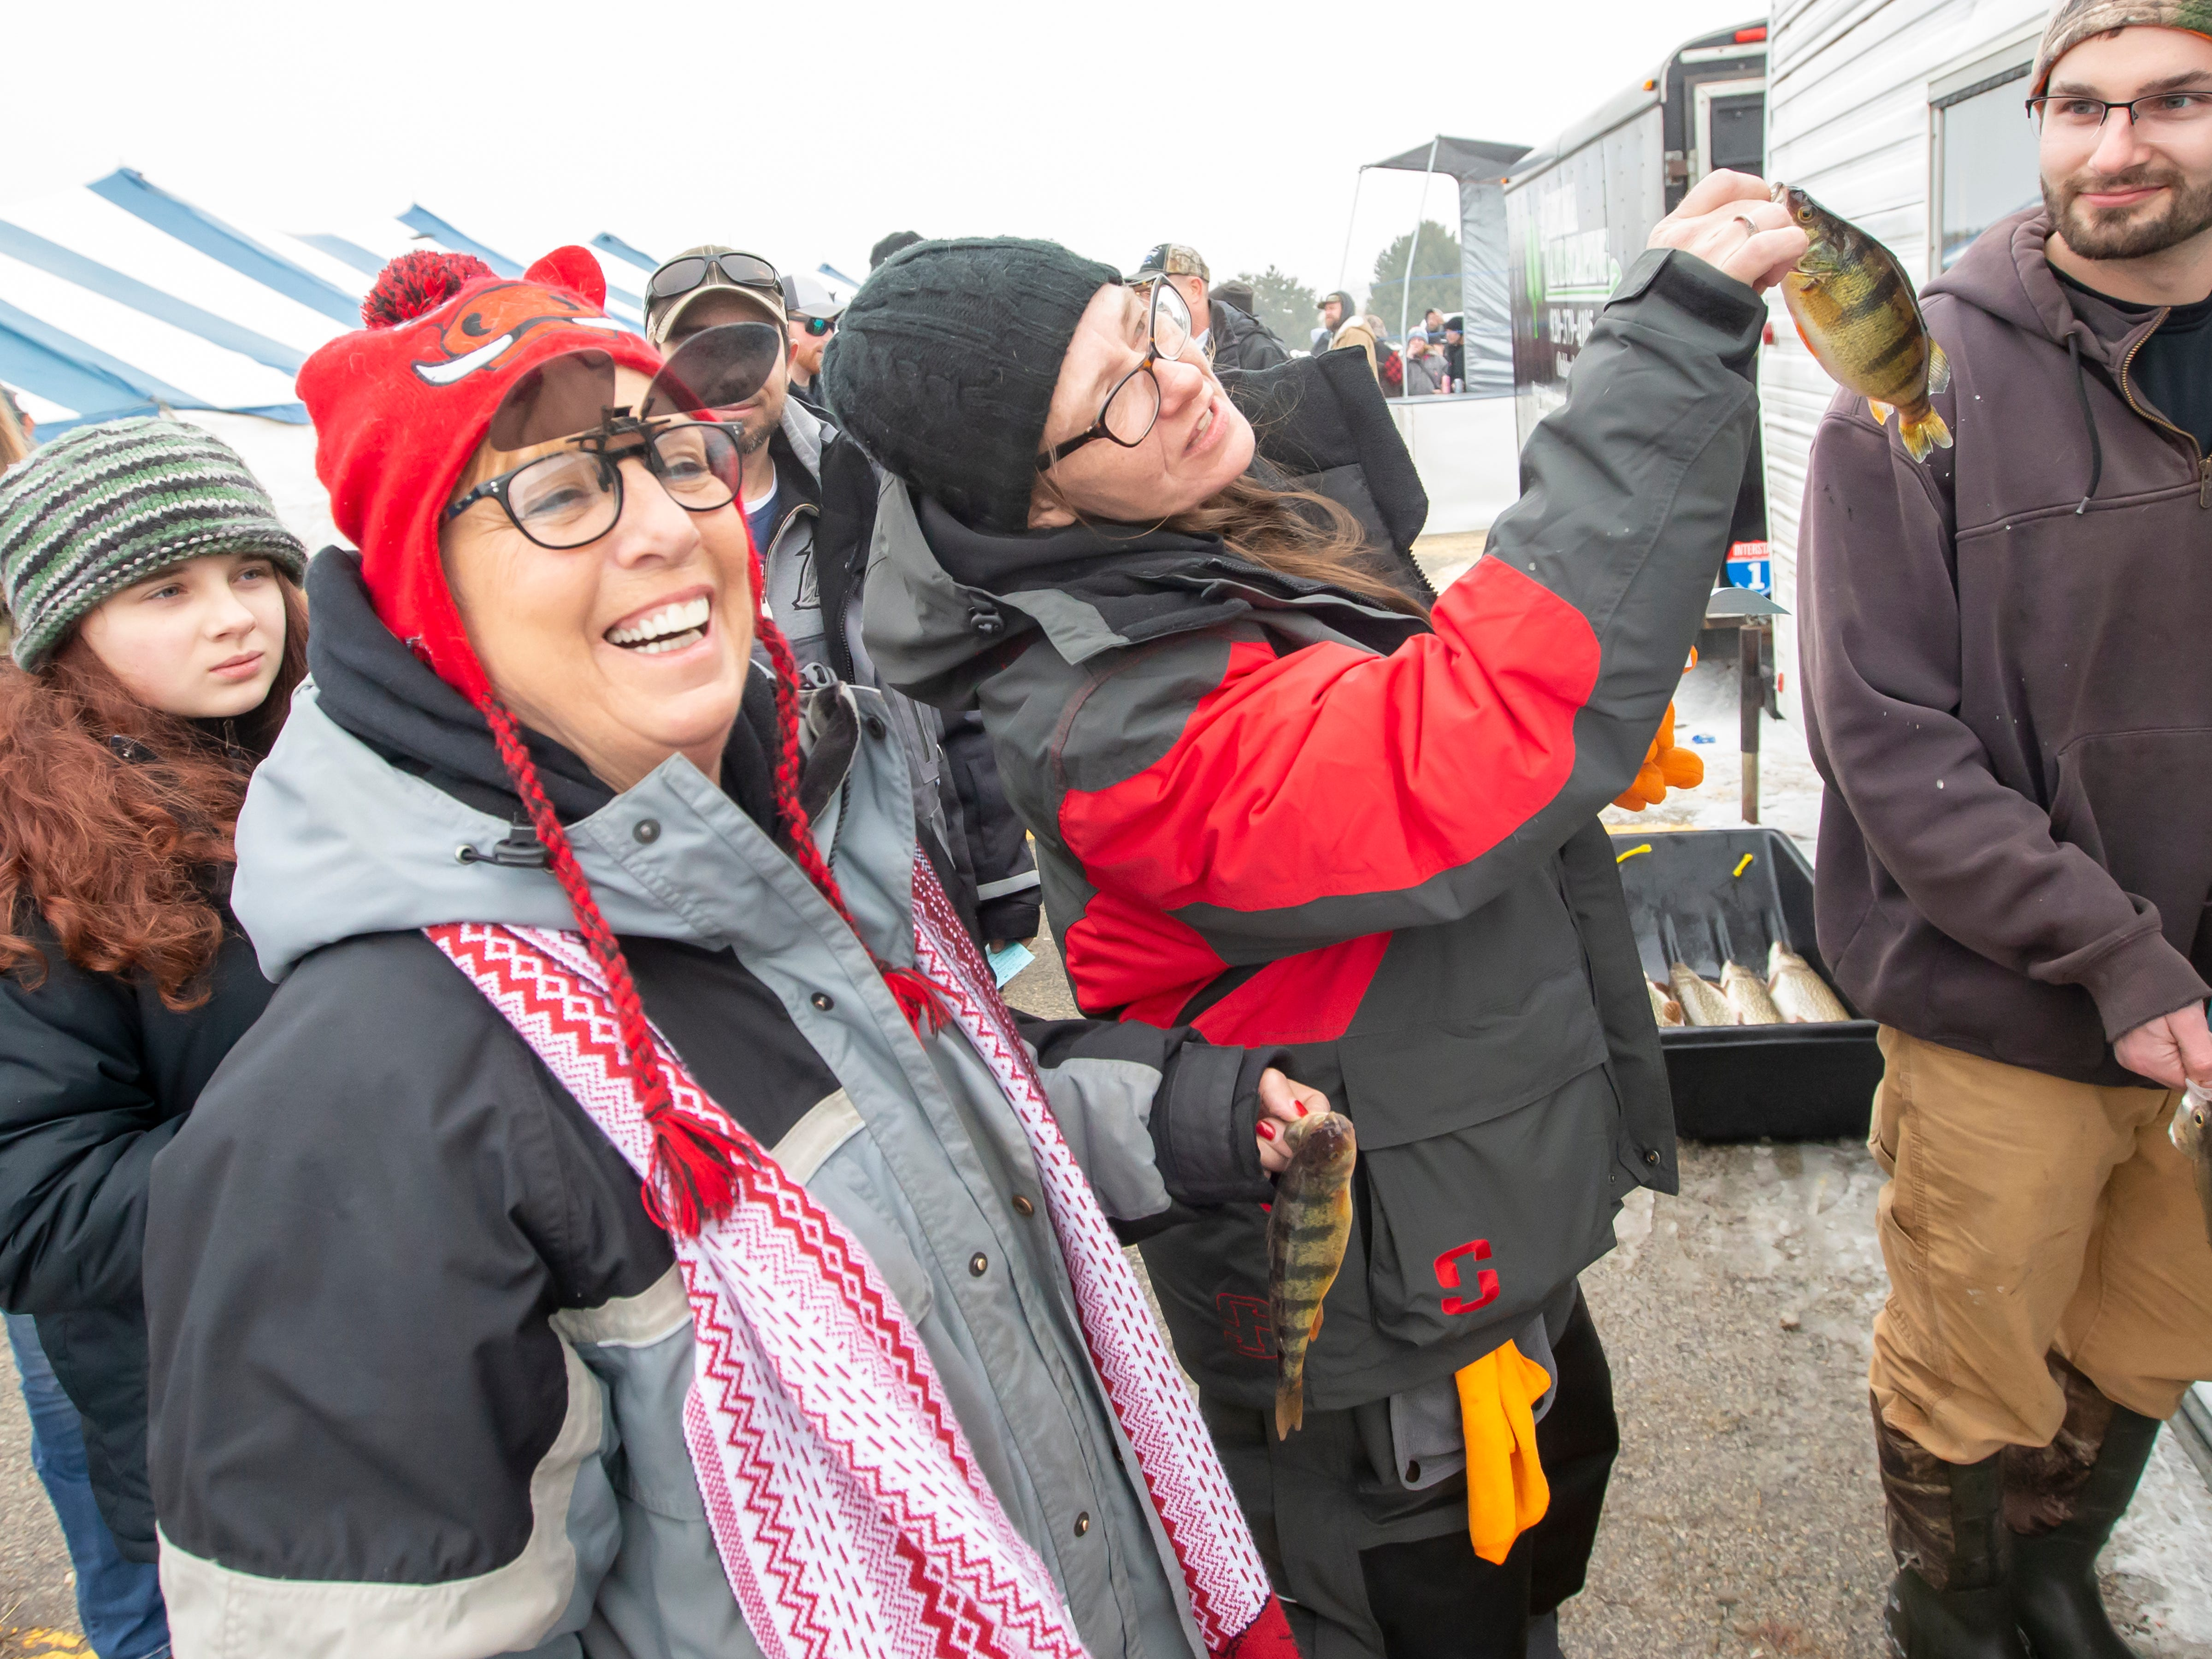 Mary and Andi Babineau wait in line to make their entry official during the Otter Street Fishing Club Winter Fisheree at Miller's Bay in Menominee Park on Saturday, Feb. 2, 2019.